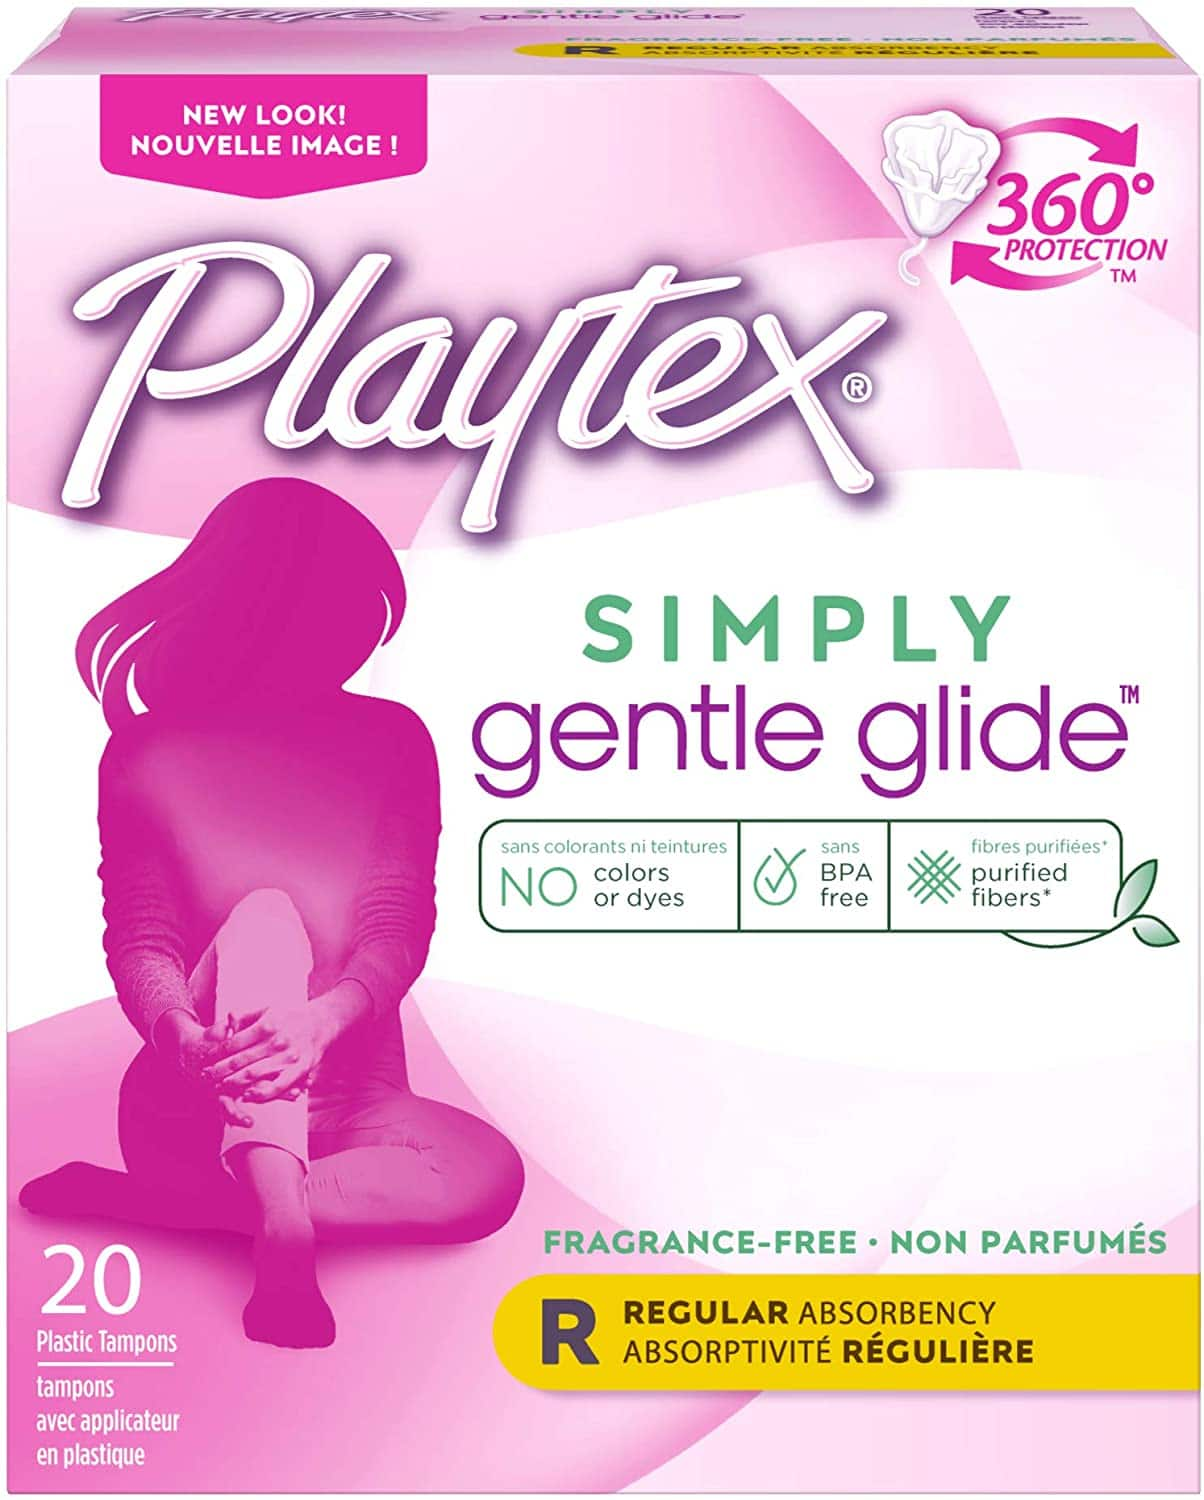 2-Pack 20-Ct Playtex Gentle Glide Tampons (Regular,Unscented) $3.80 w/ S&S + Free Shipping w/ Amazon Prime or Orders $25+